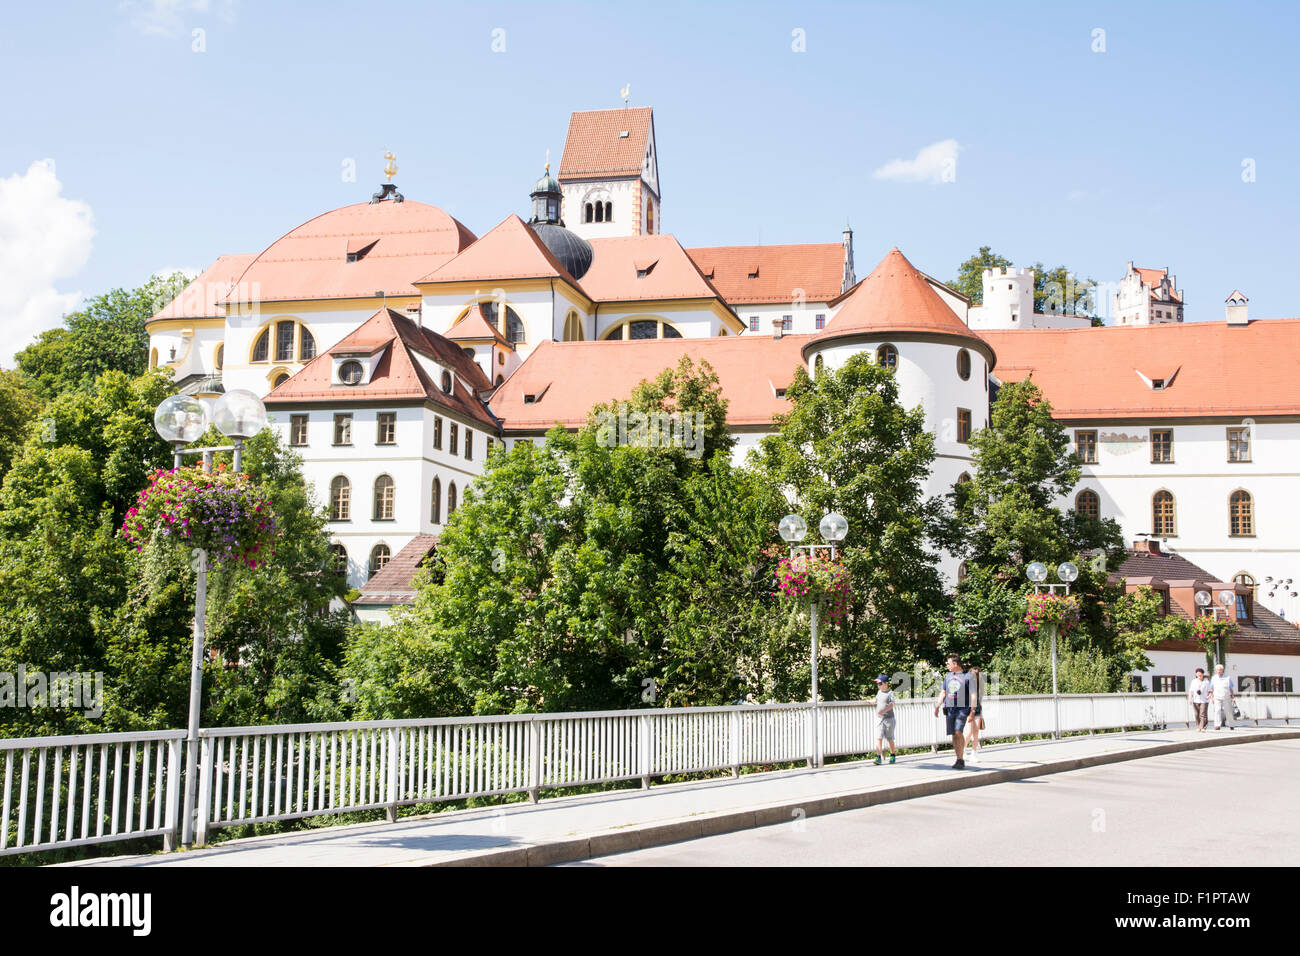 FUESSEN, GERMANY - AUGUST 22: Tourists at the Kloster Sankt Mang in Fuessen, Germany on August 22, 2015. The abbey - Stock Image